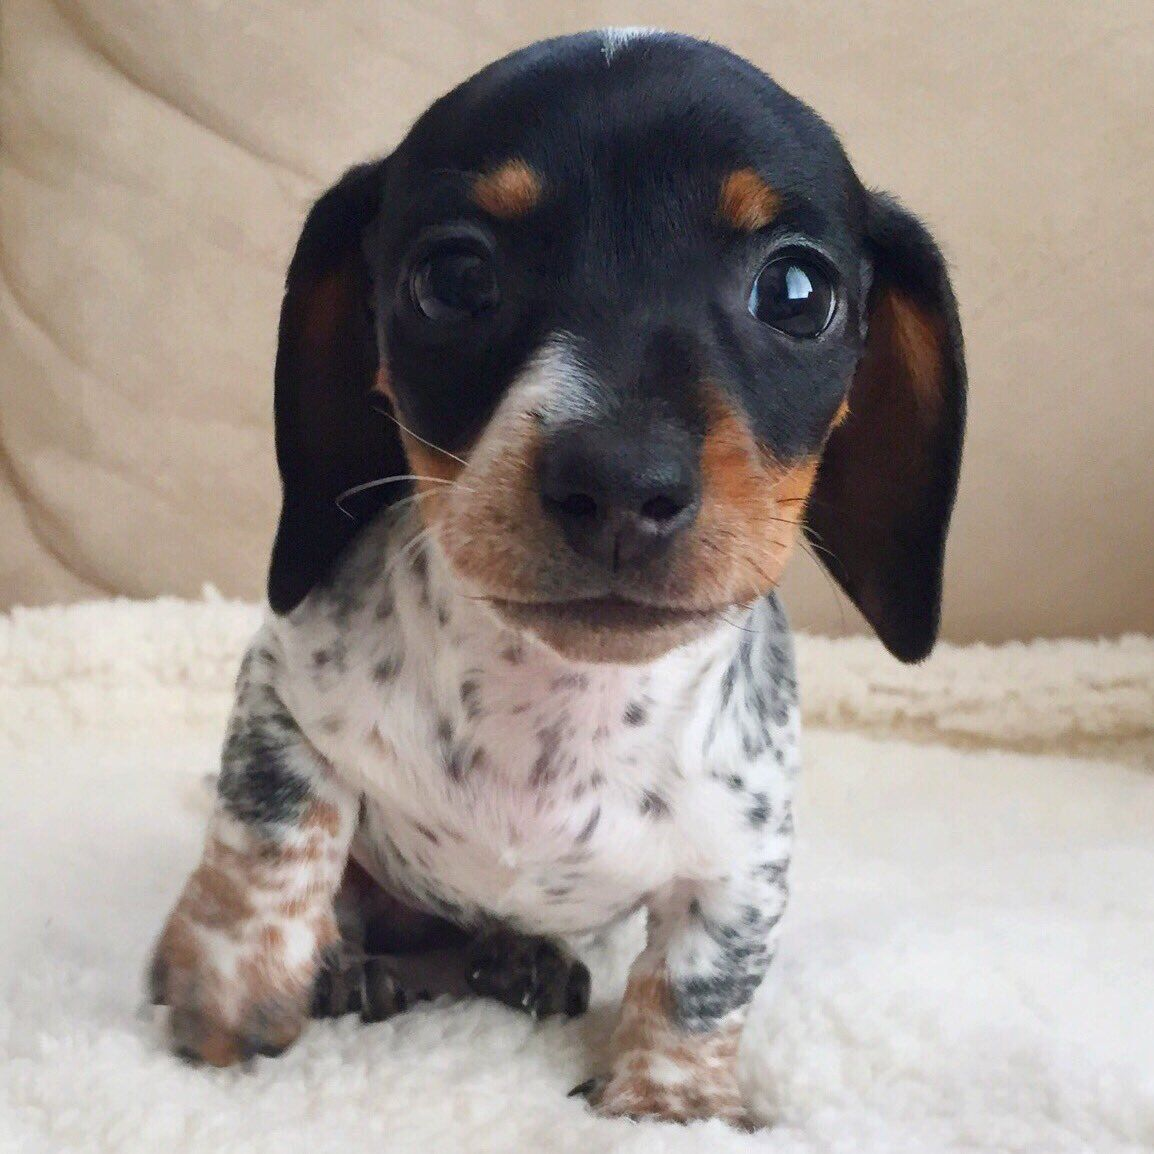 Woof Adorable Little Reese The New Miniature Dachshund Puppy